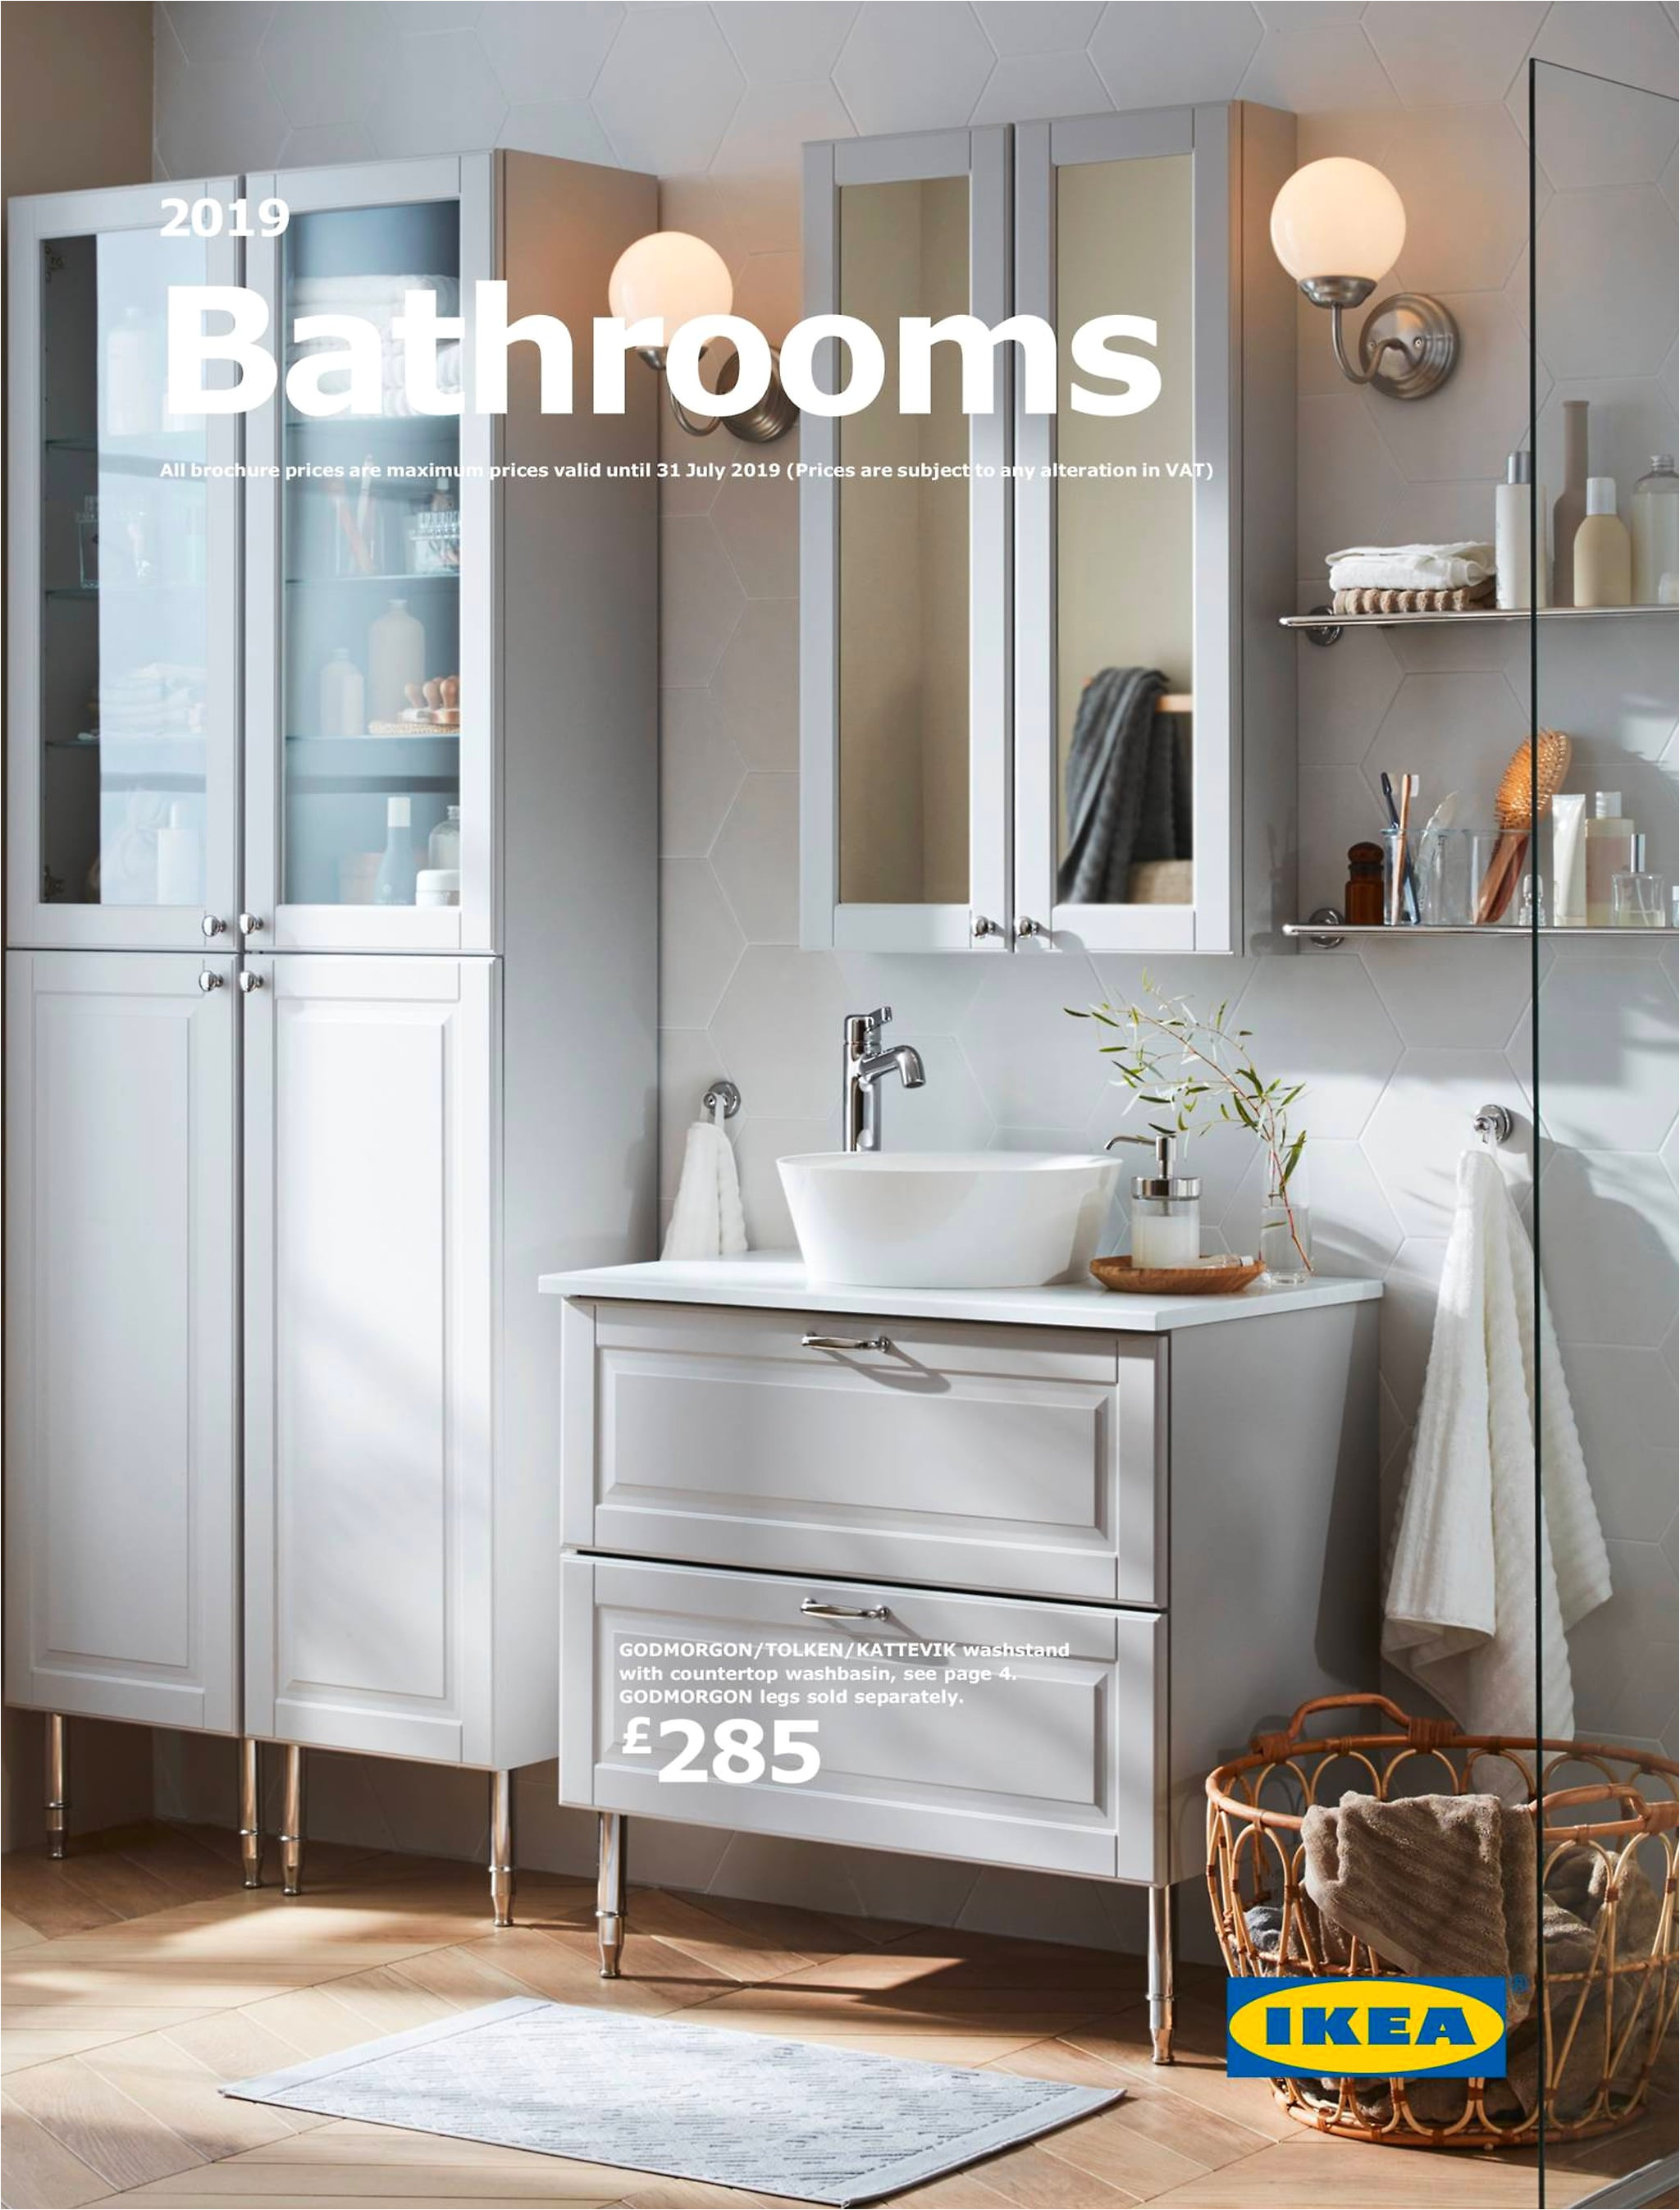 this is the cover of the bathrooms brochure featuring a white godmorgon cabinet with a wash